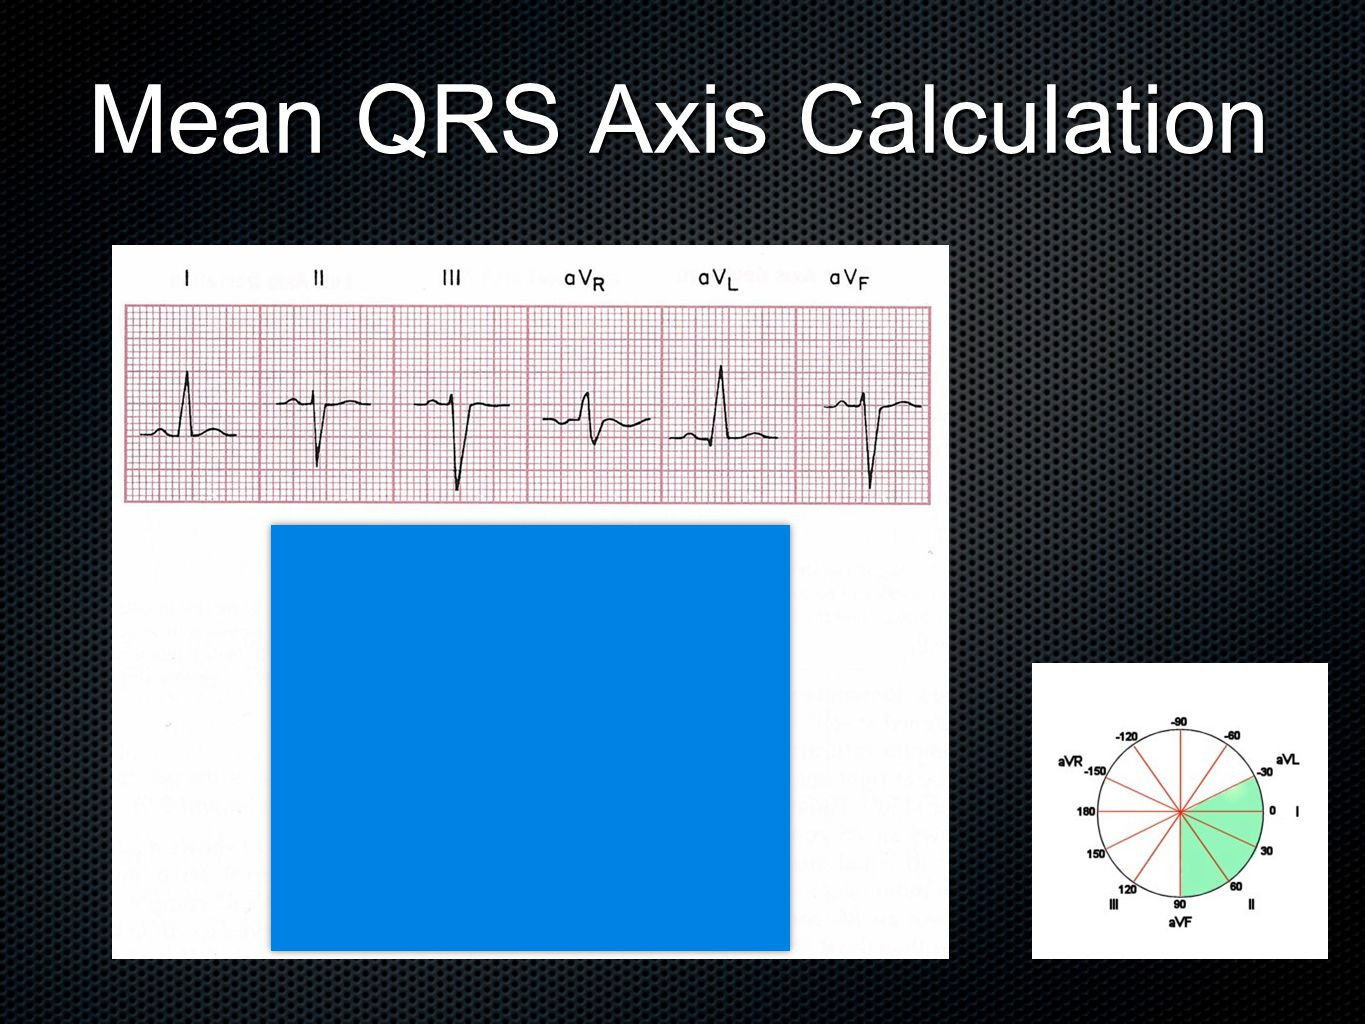 Mean QRS Axis Calculation